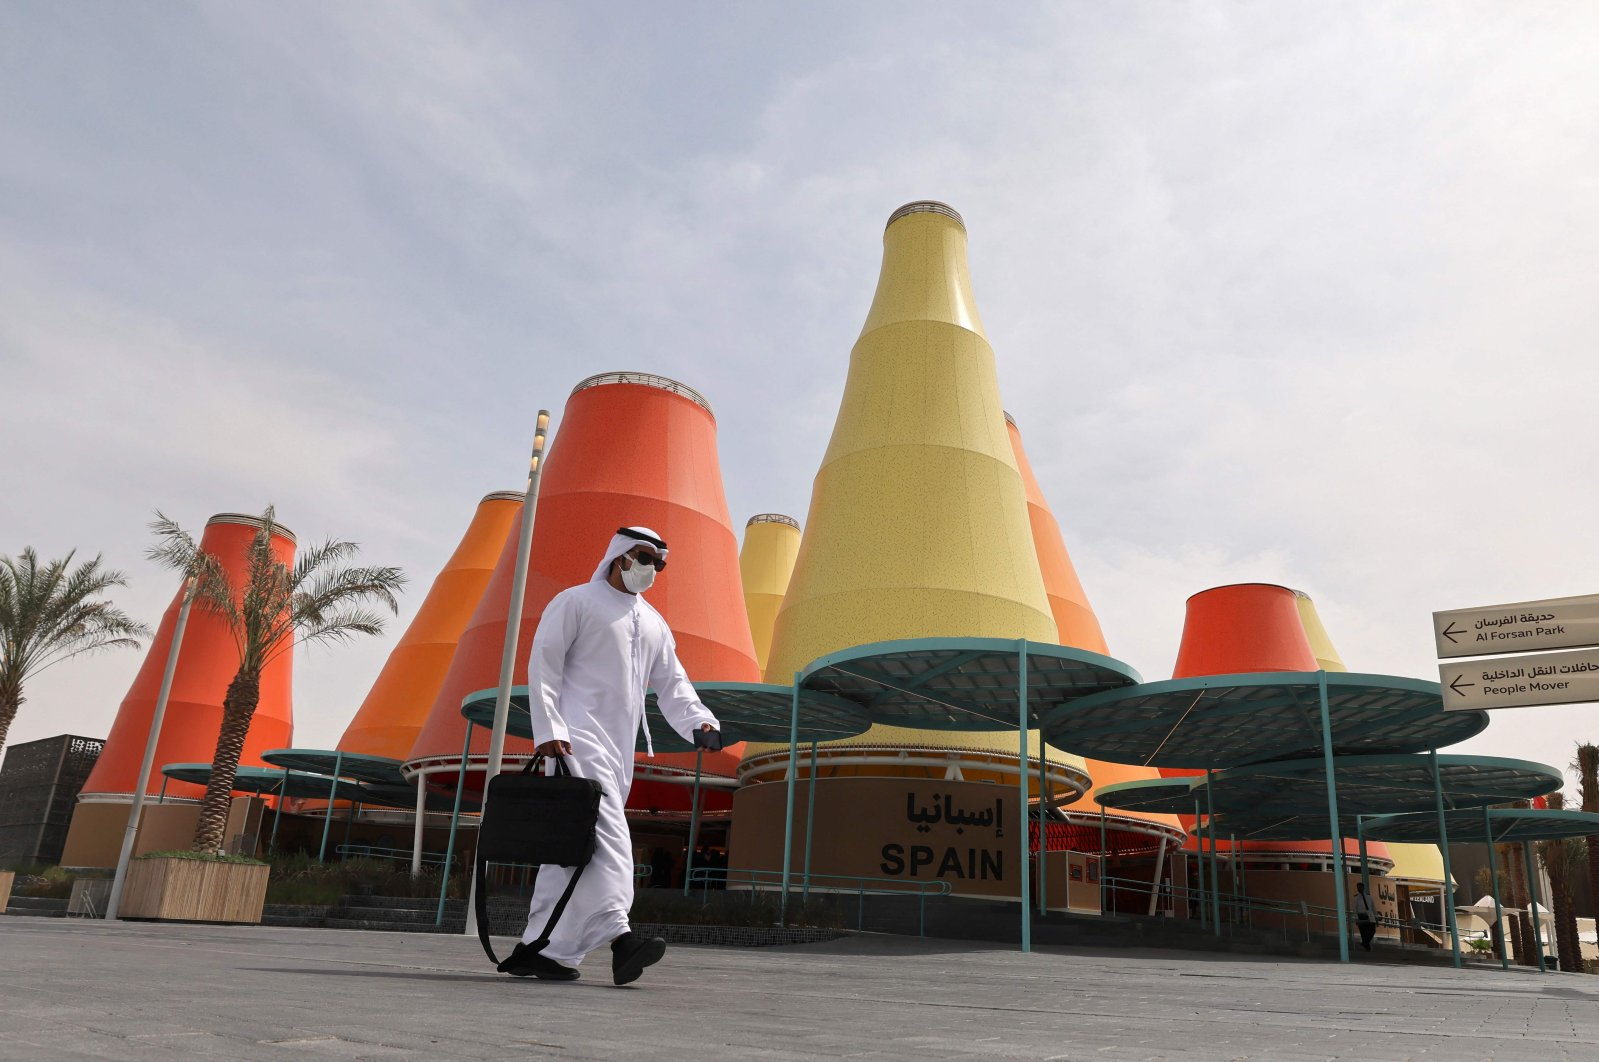 Visitors explore the Spanish pavilion at the Expo 2020, in the Gulf Emirate of Dubai, UAE, Oct. 3, 2021. (AFP Photo)